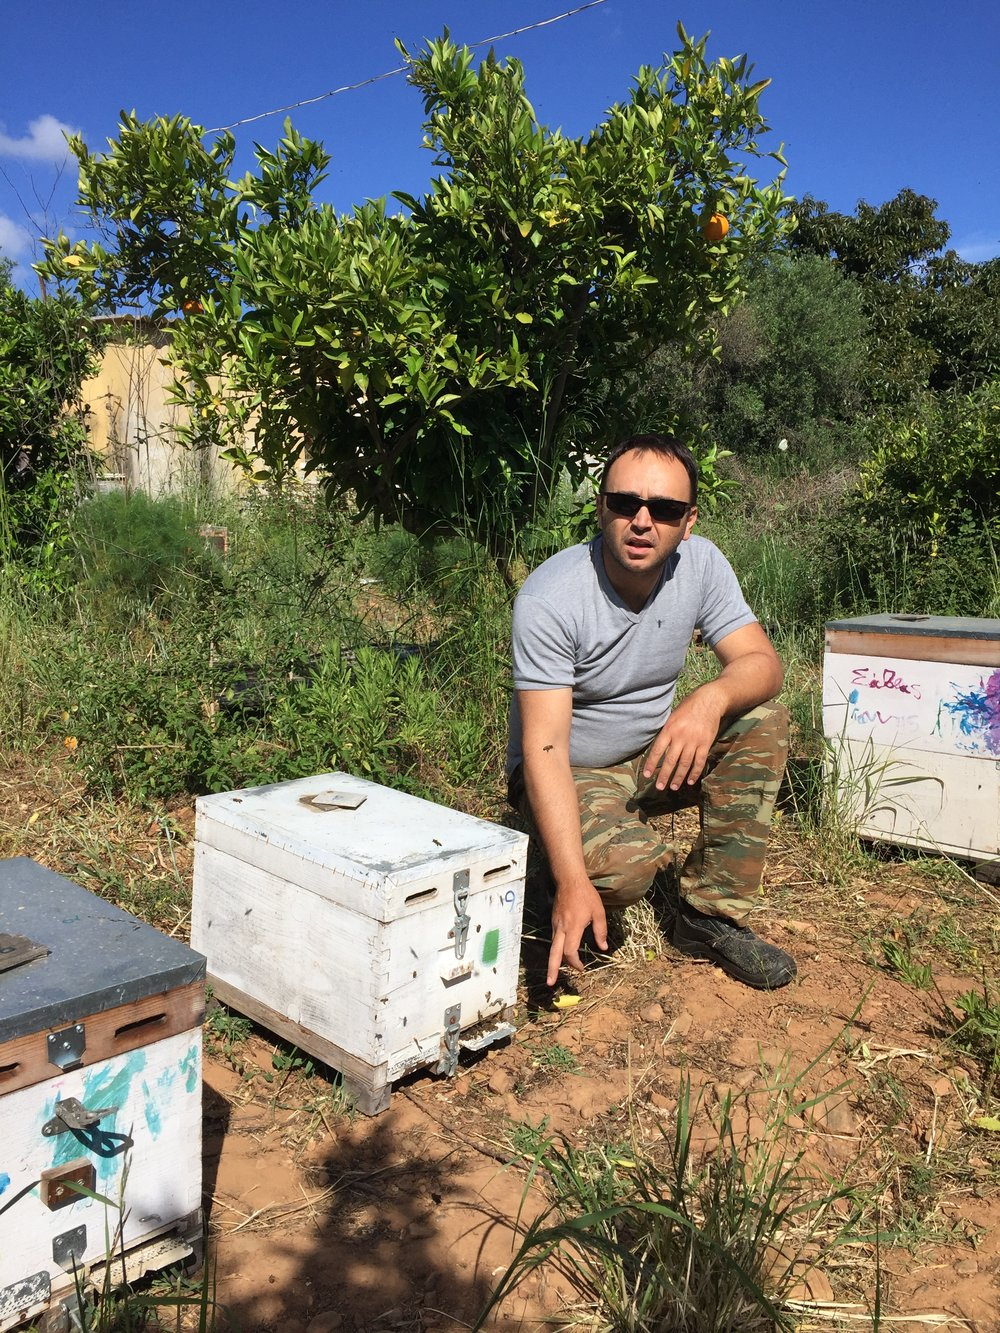 - Amateur beekeeper Dimitris Siozos in Crete with his bee colonies and orange tree in background. (Betsy Herbert -- Contributed)